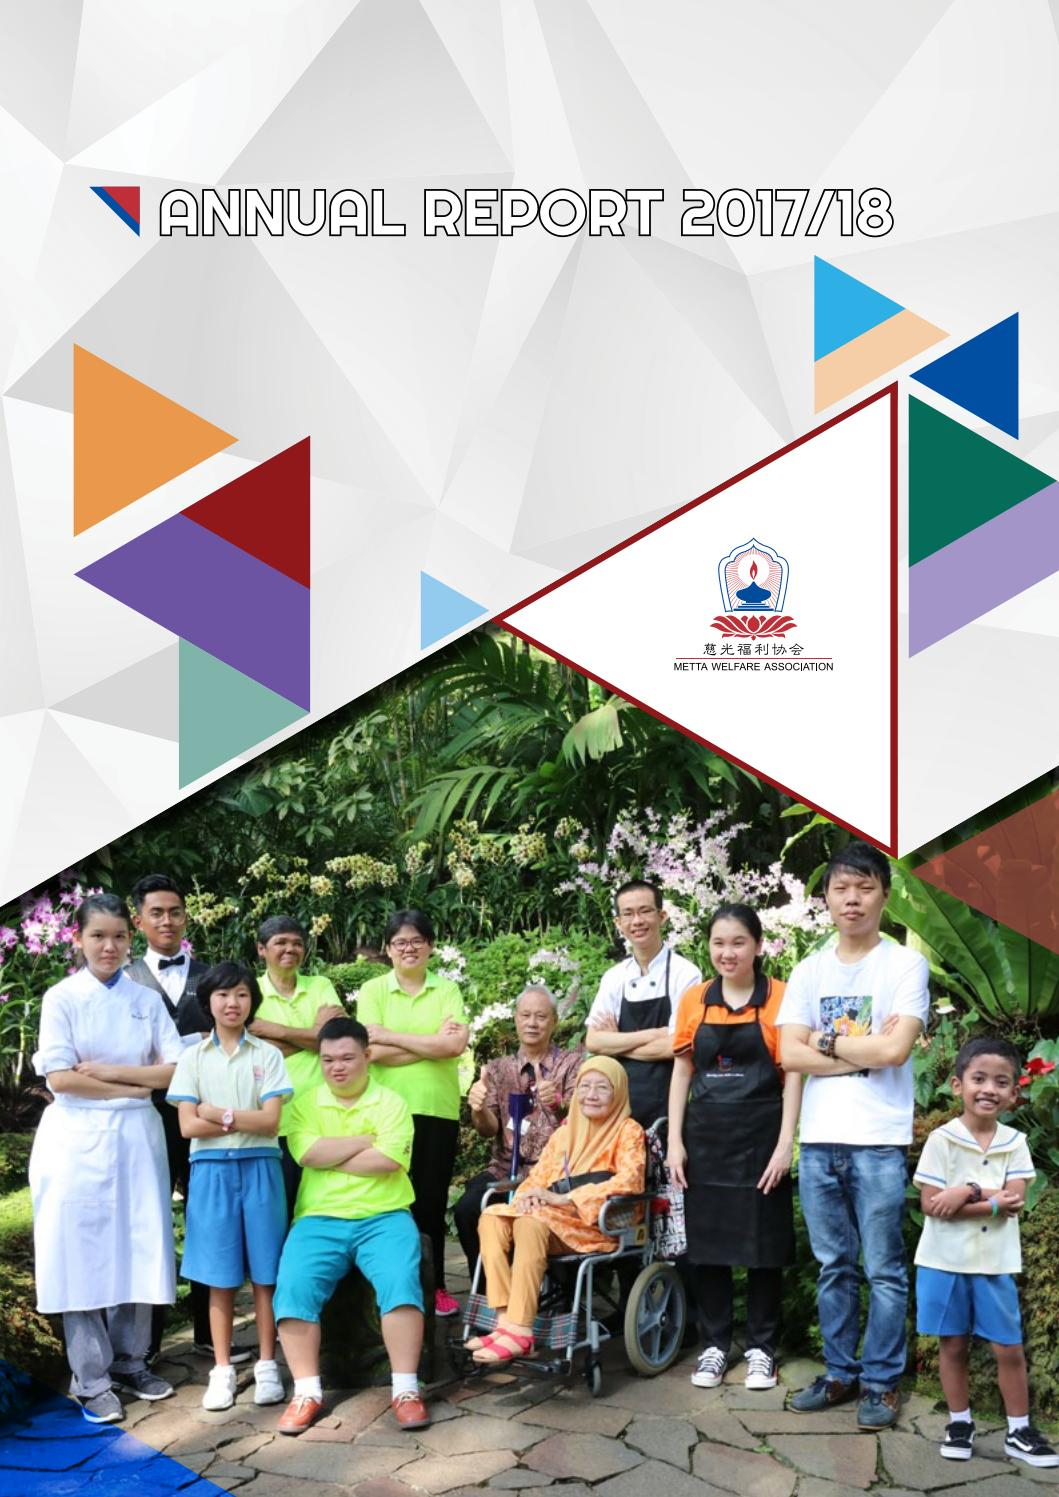 Metta Welfare Association | Annual Report 2017/18 by Metta